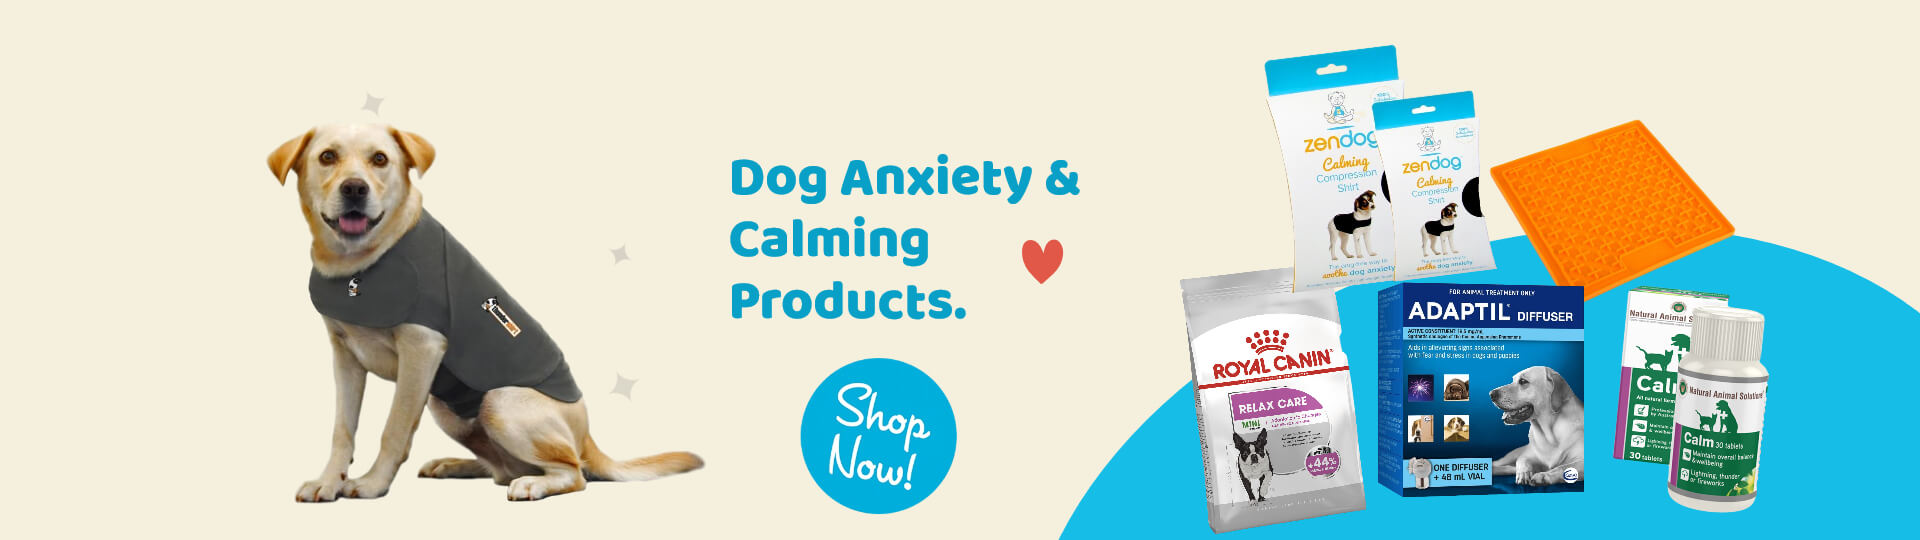 Dog Anxiety & Calming Banner